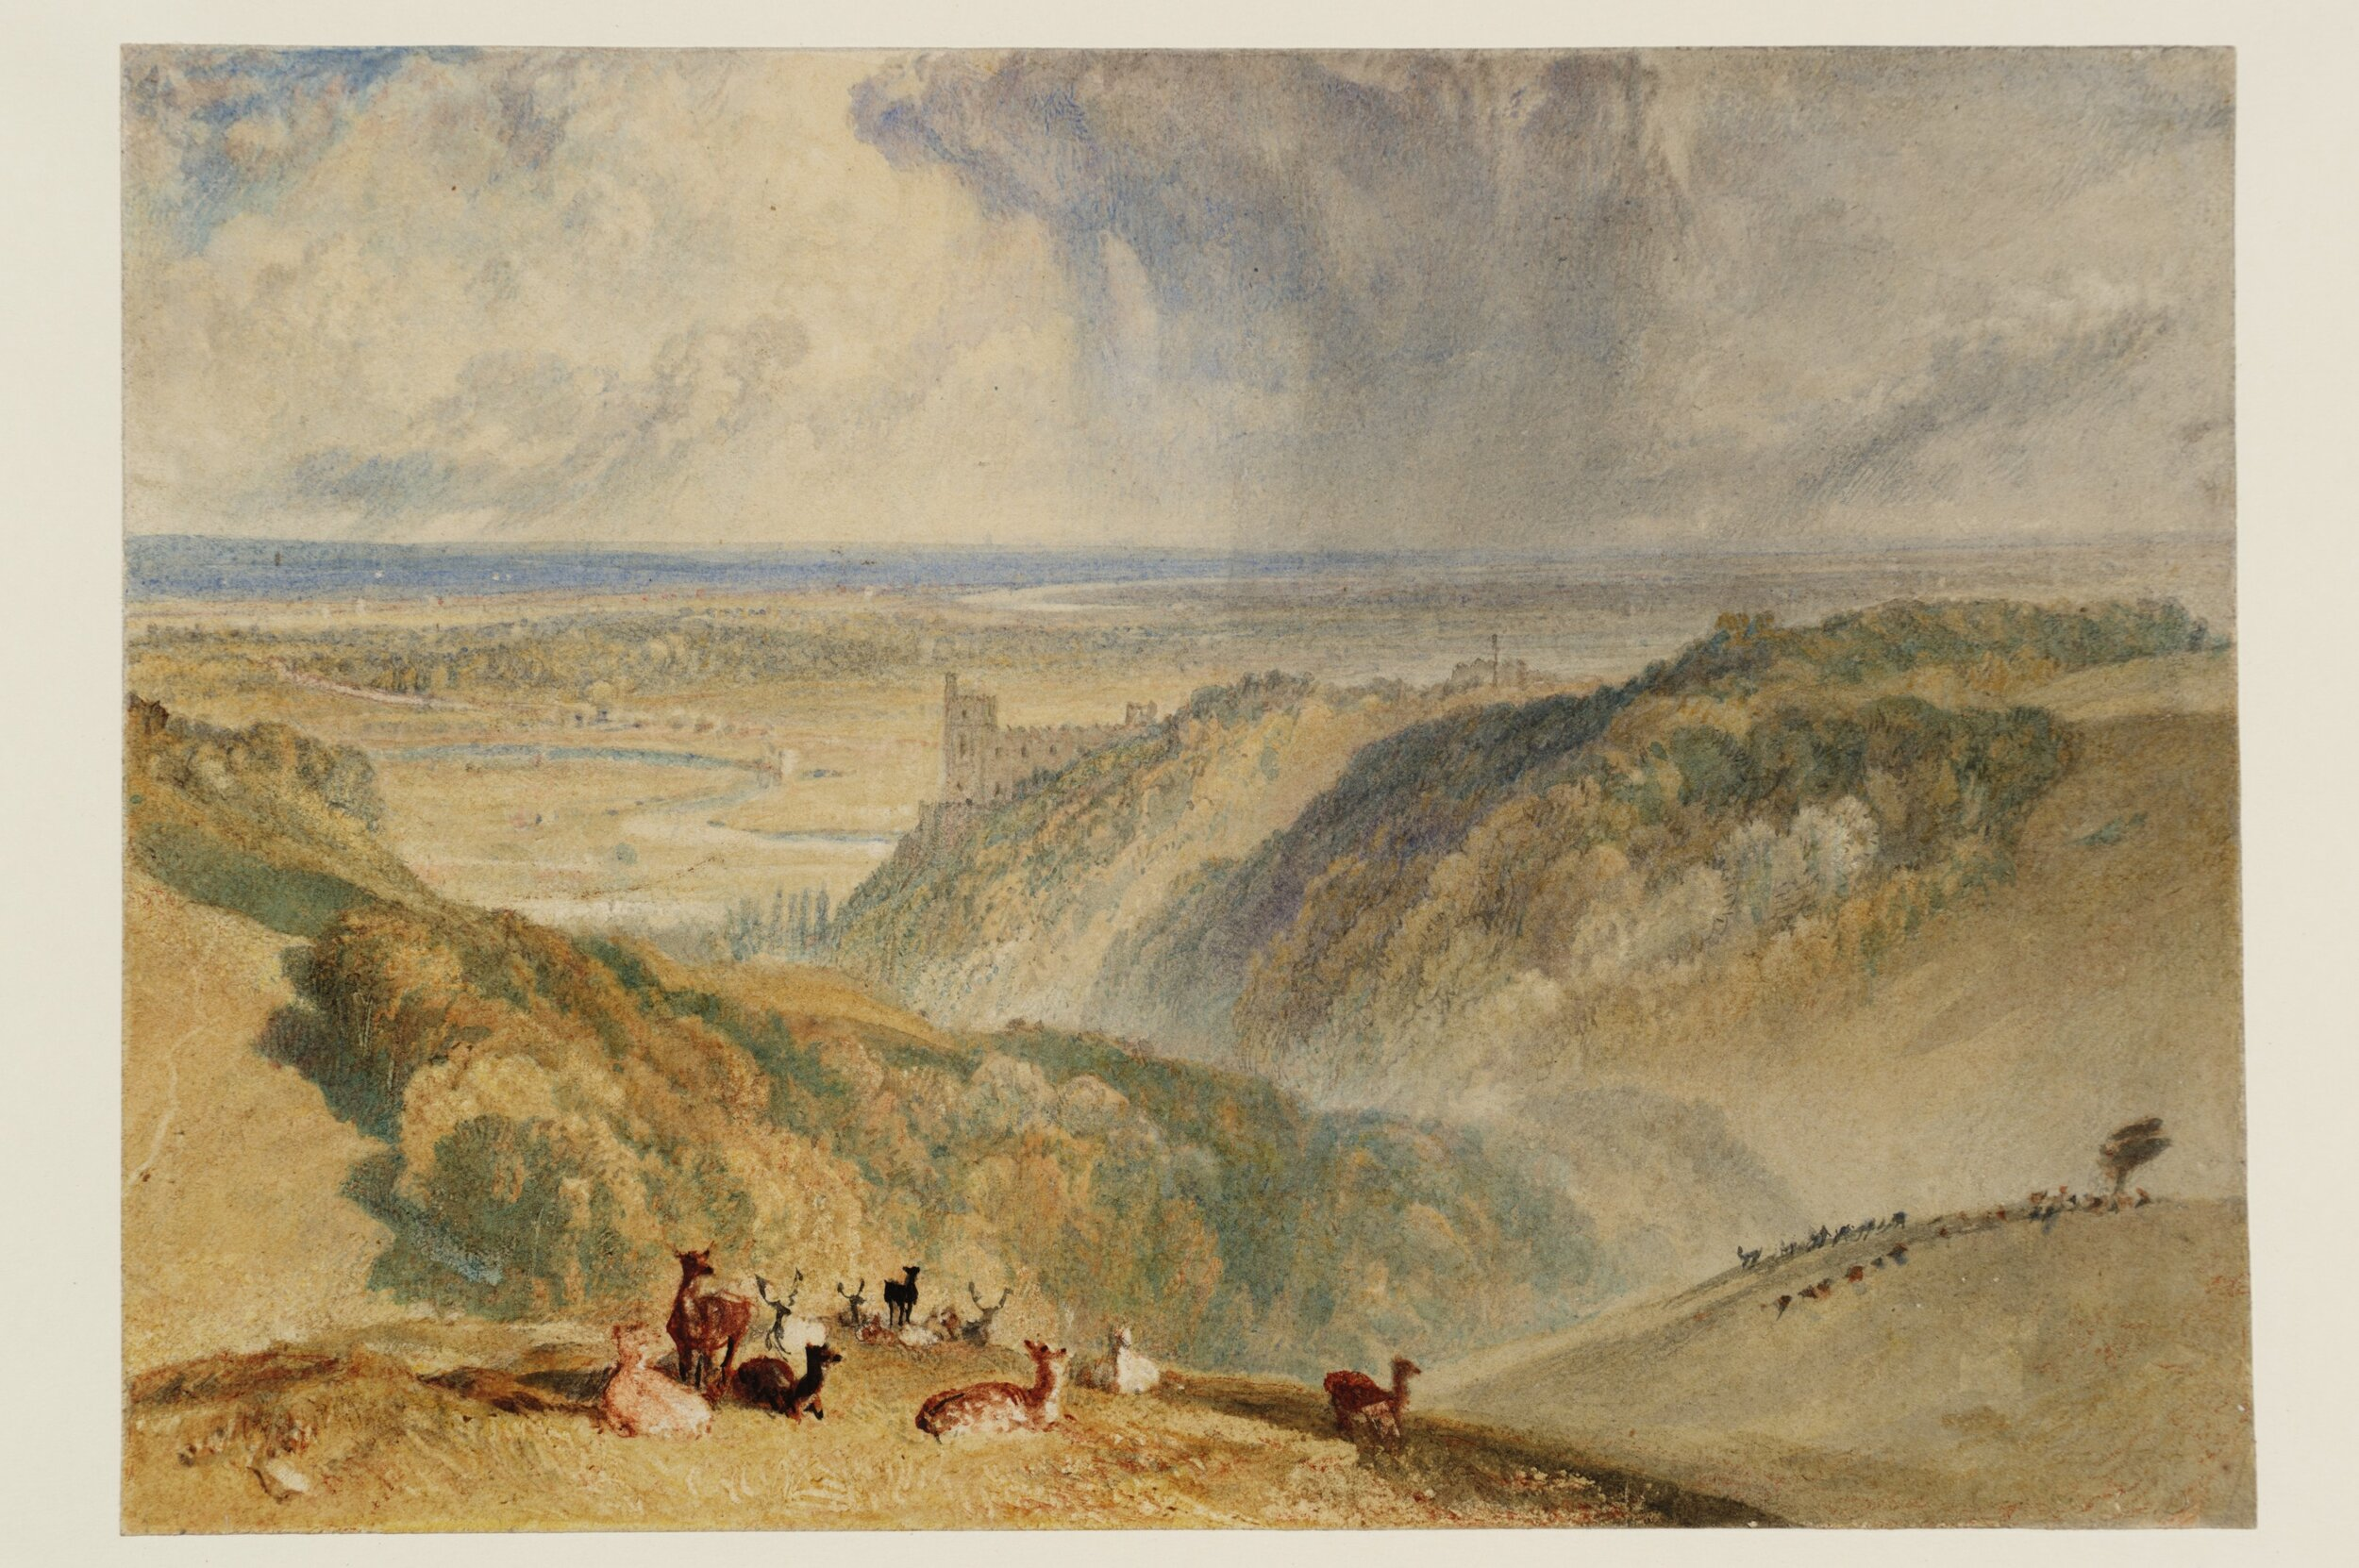 J. M. W. Turner,  Arundel Castle, on the River Arun ,  ca . 1824, Watercolor on paper, Tate.